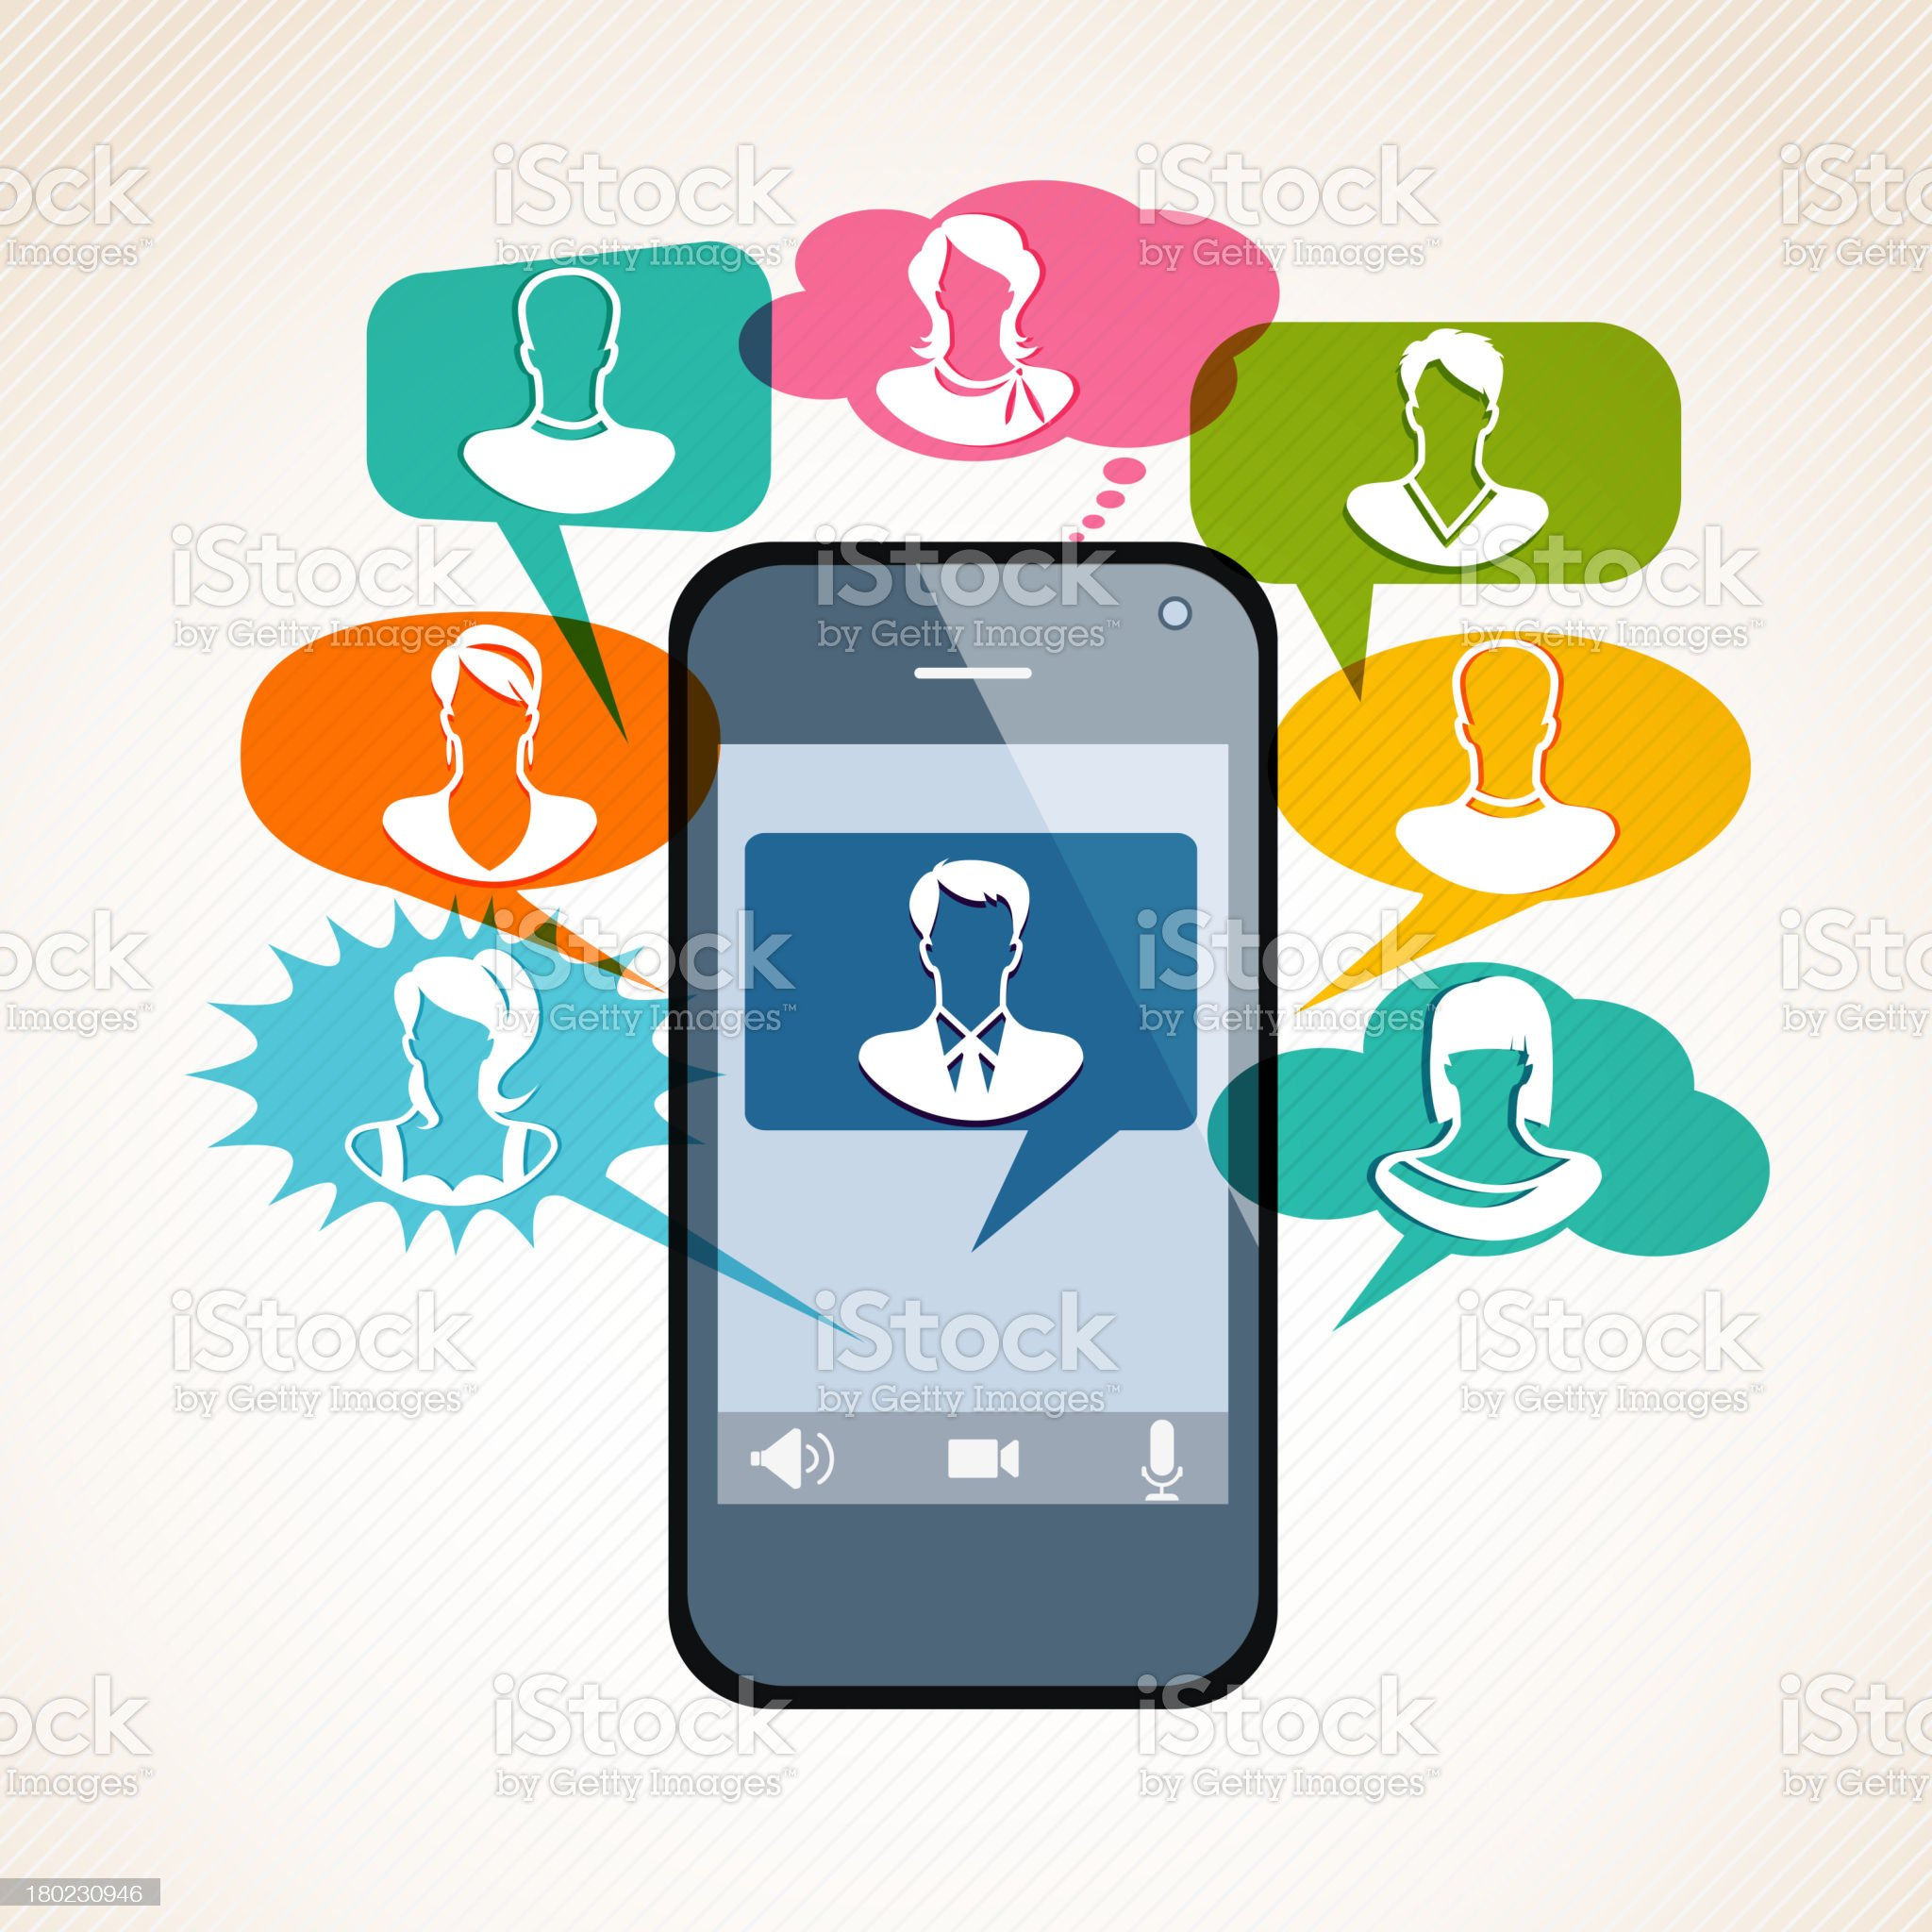 Smart Phone Video Chat royalty-free stock vector art